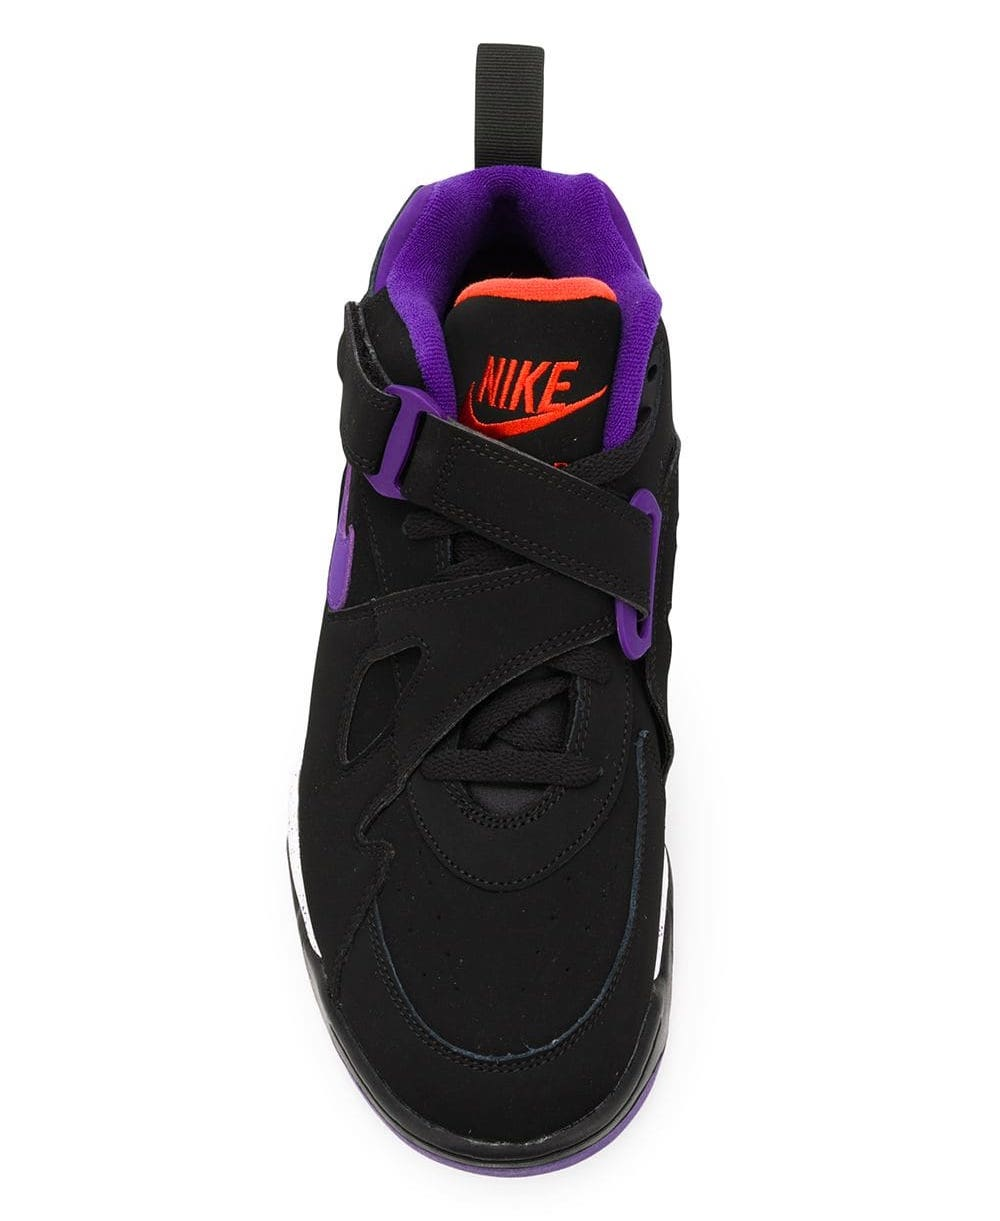 timeless design 0febd 83229 NIKE AIR FORCE MAX CB CHARLES BARKLEY SUNS AWAY SNEAKERS MEN SHOES ...